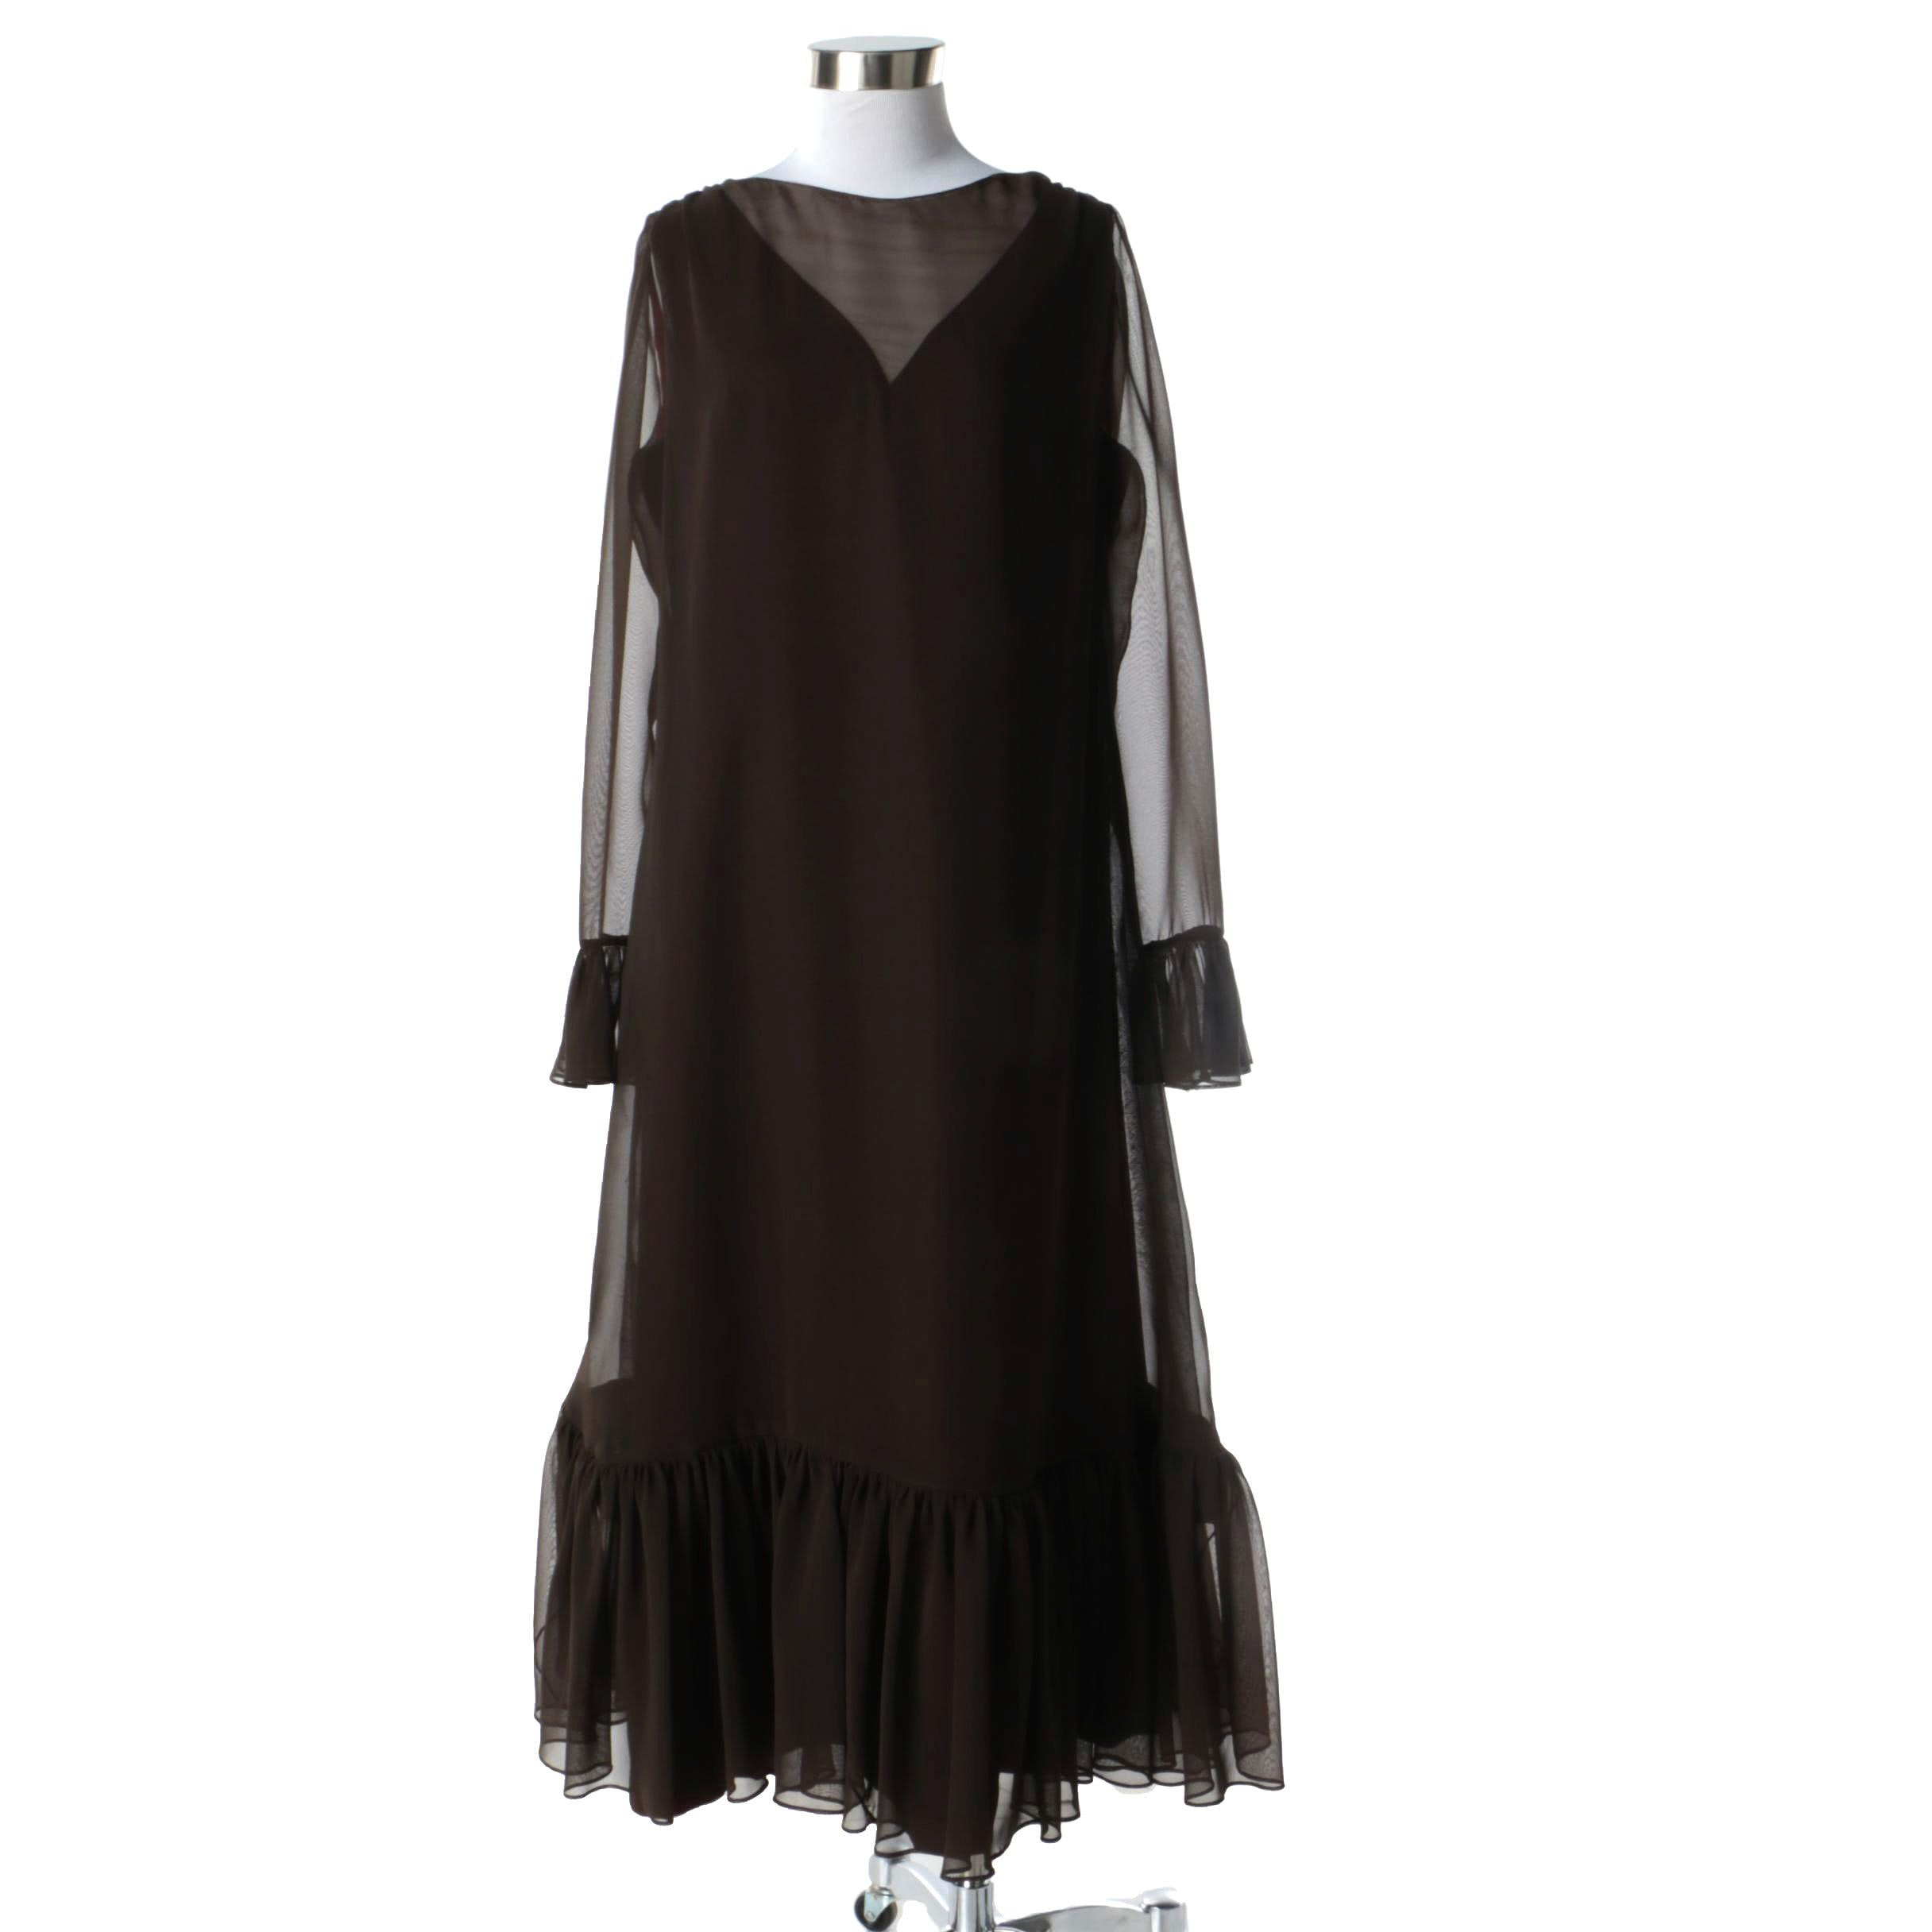 1980s Vintage Gene Roy Chocolate Brown Chiffon Ruffle Silk Midi Dress